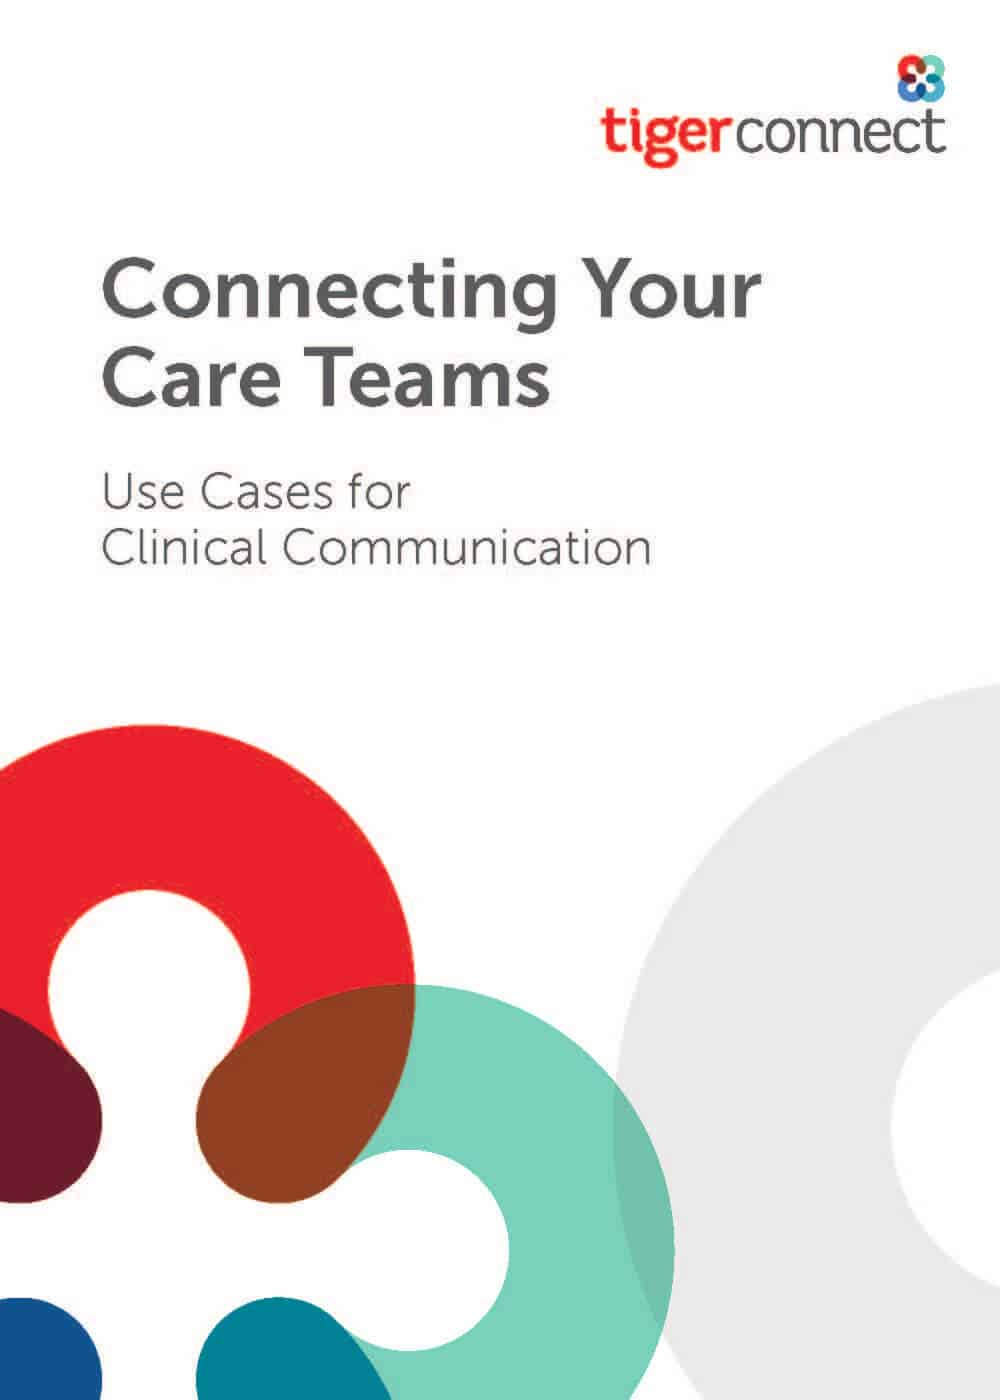 Connecting Care Teams: Use Cases for Clinical Communication